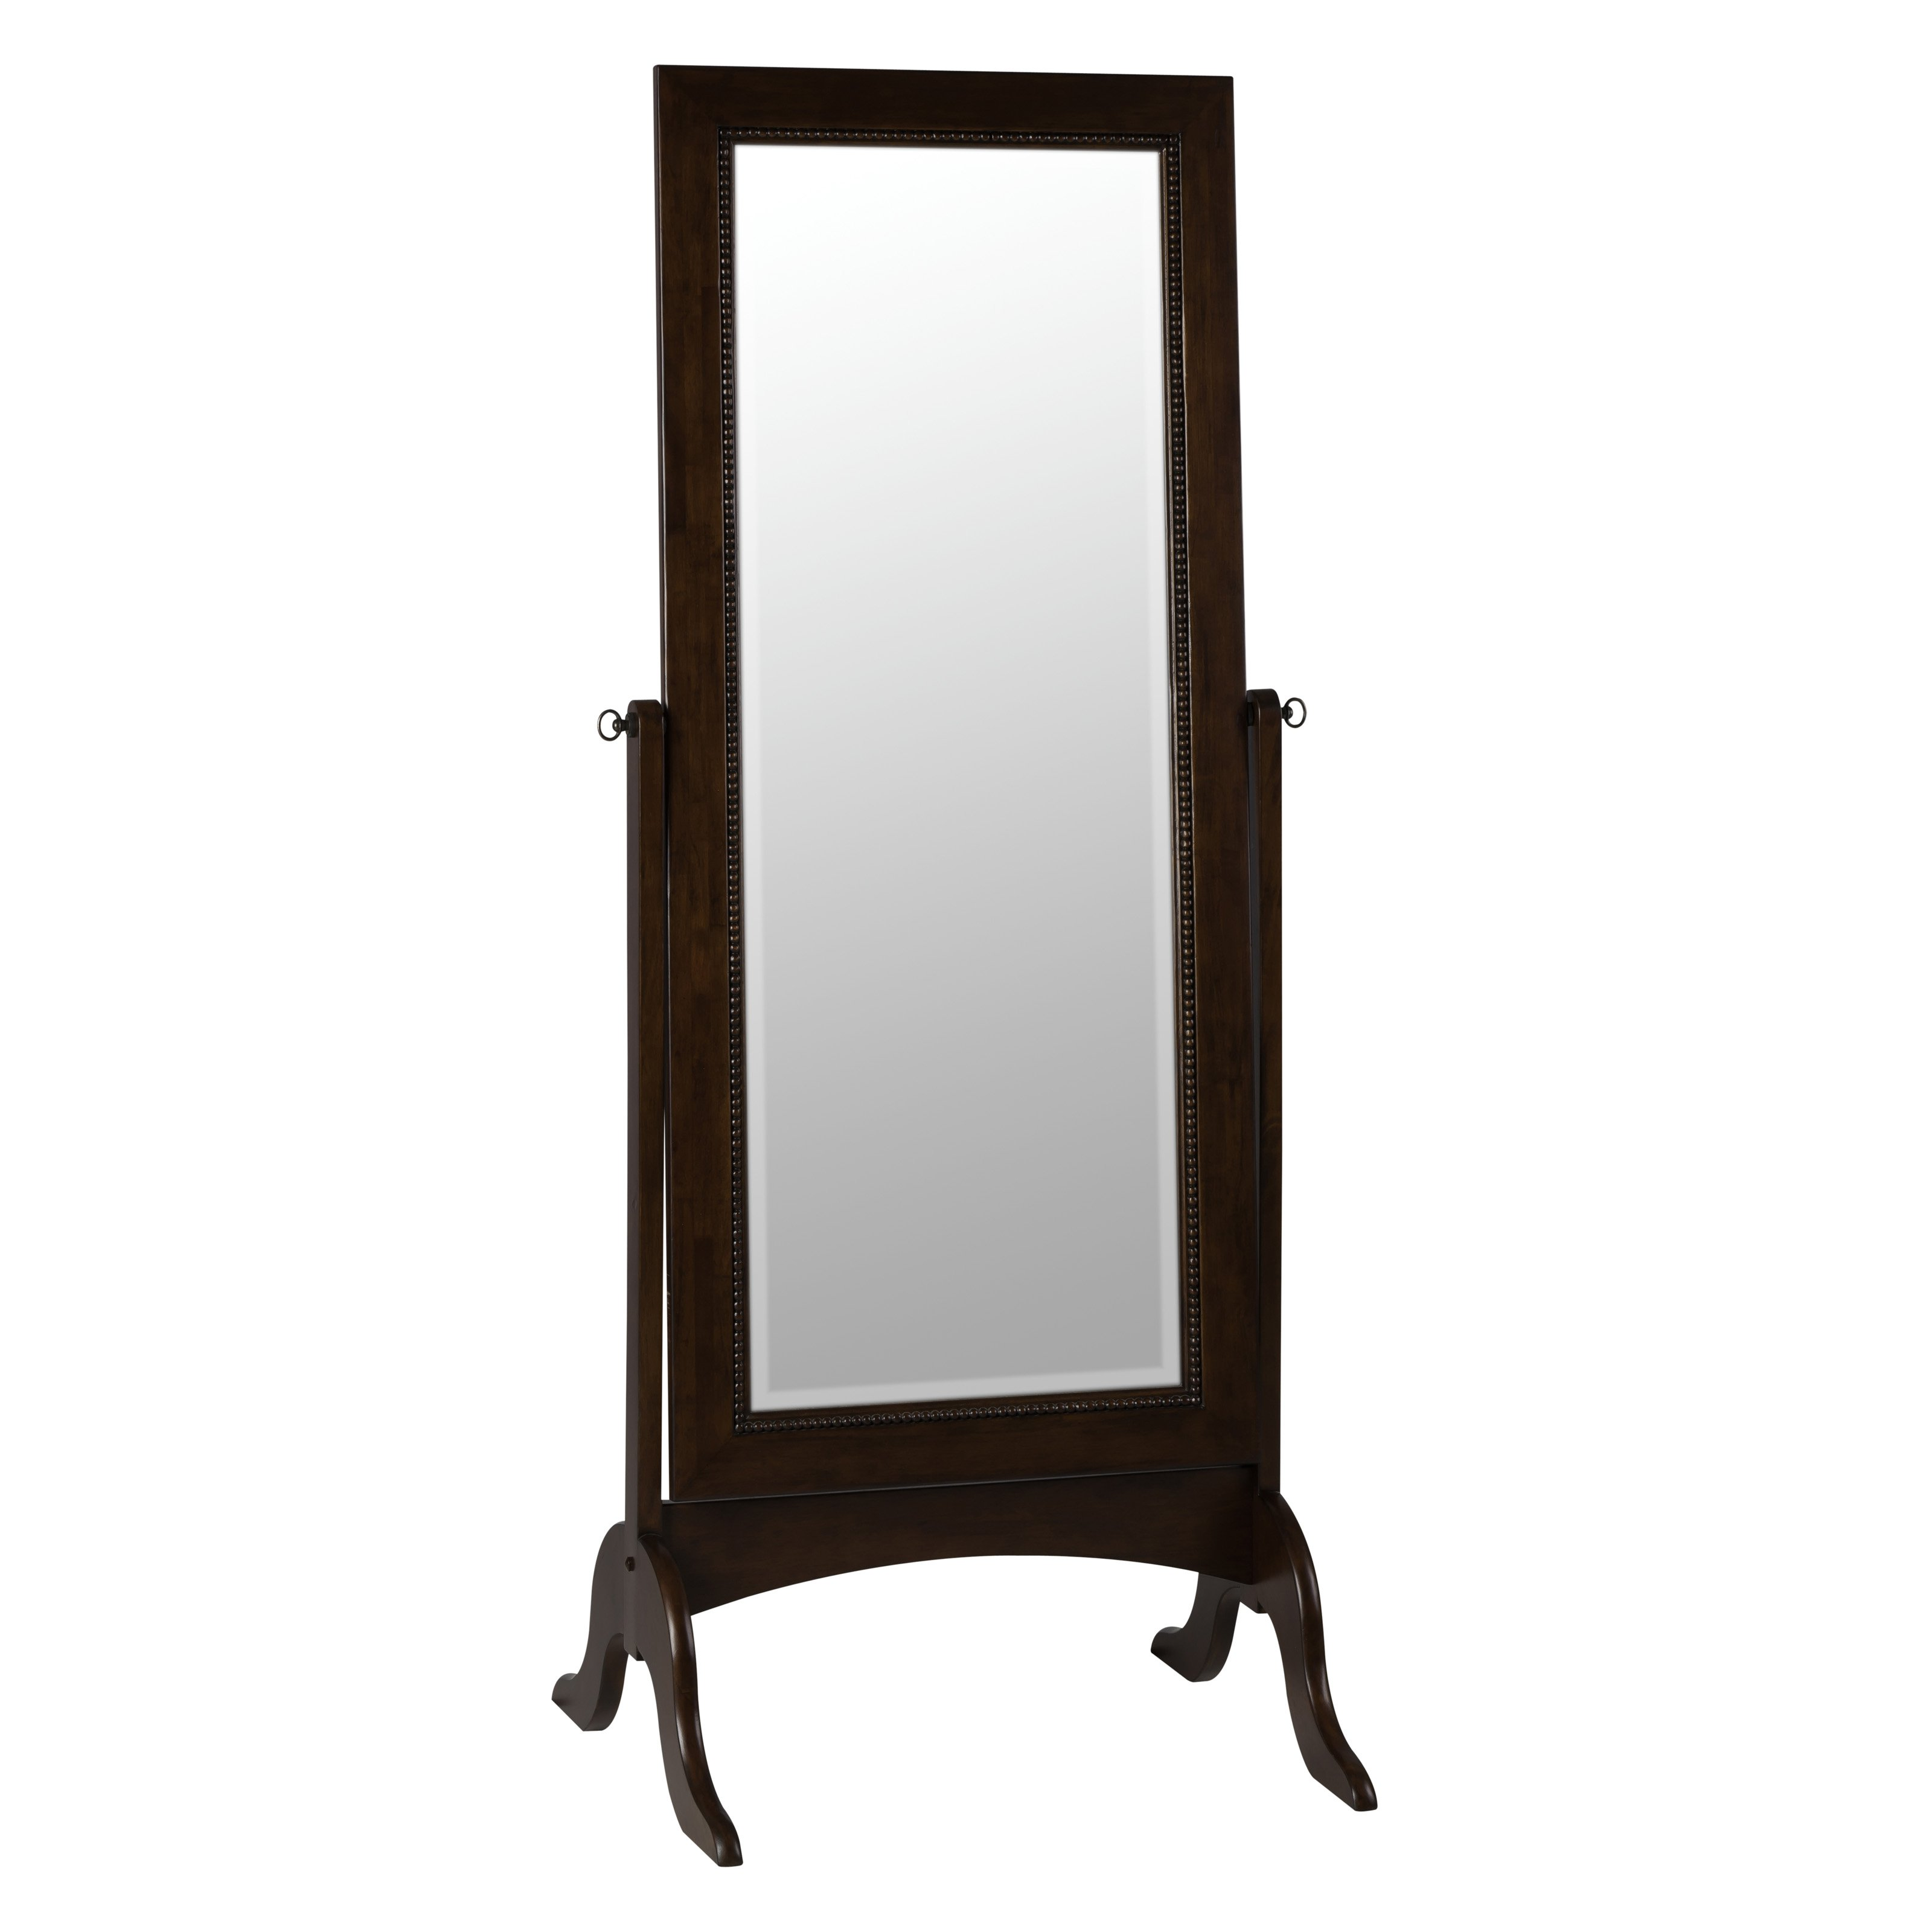 Oakes Cheval Mirror 26.5W x 68.5H in. by Cooper Classics